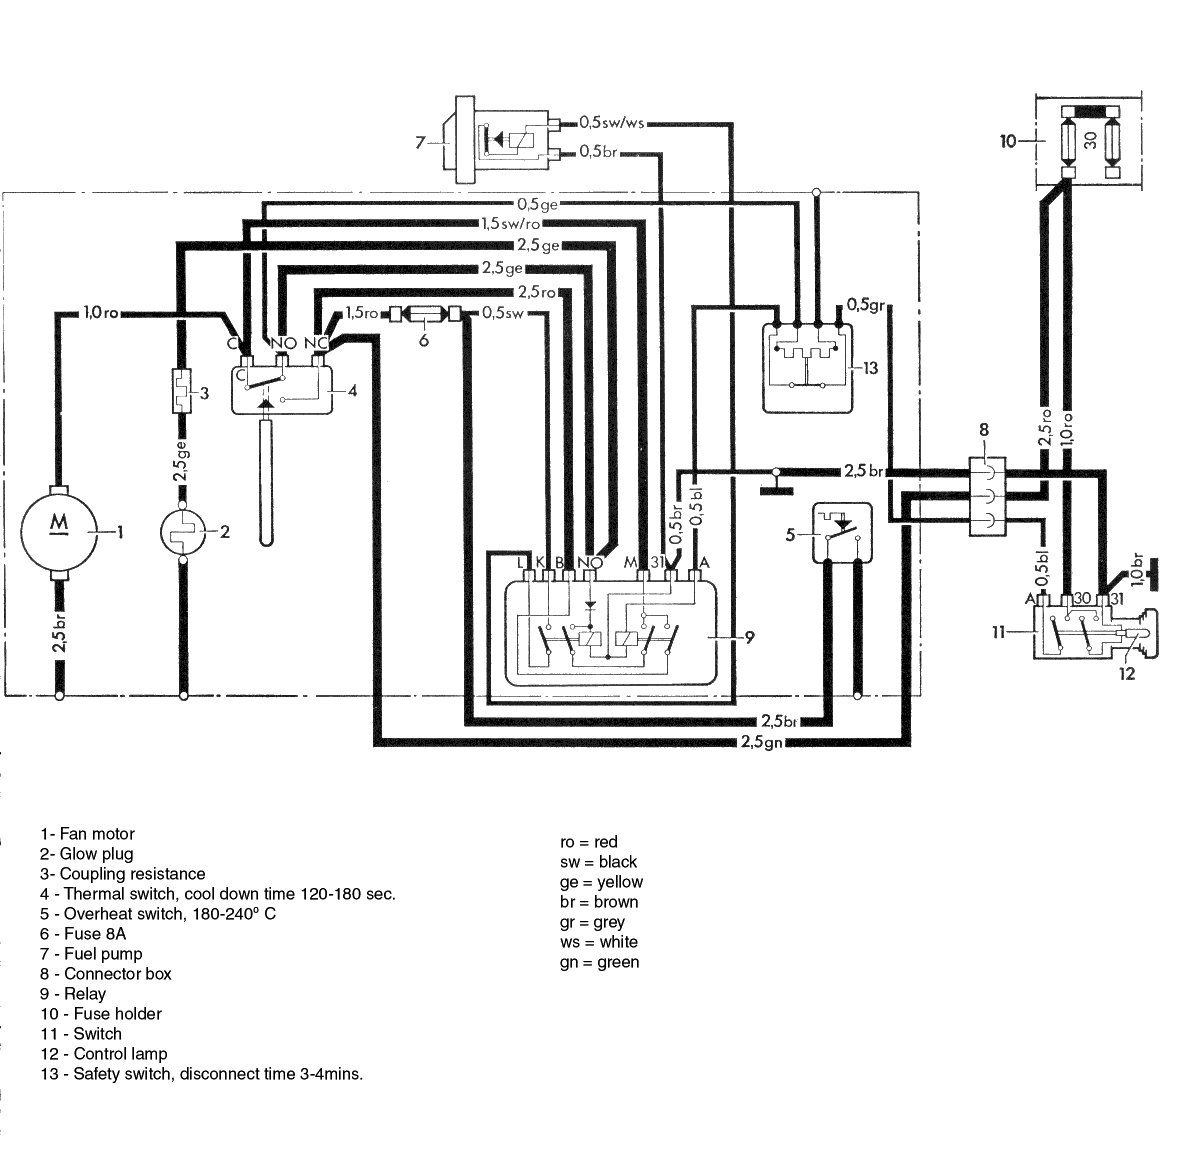 Vw Heater Diagram Wiring Detailed A Thermostat To An Electric Thesamba Com Eberspacher Gas Installation Manual Bn 2 Volkswagen Heaters